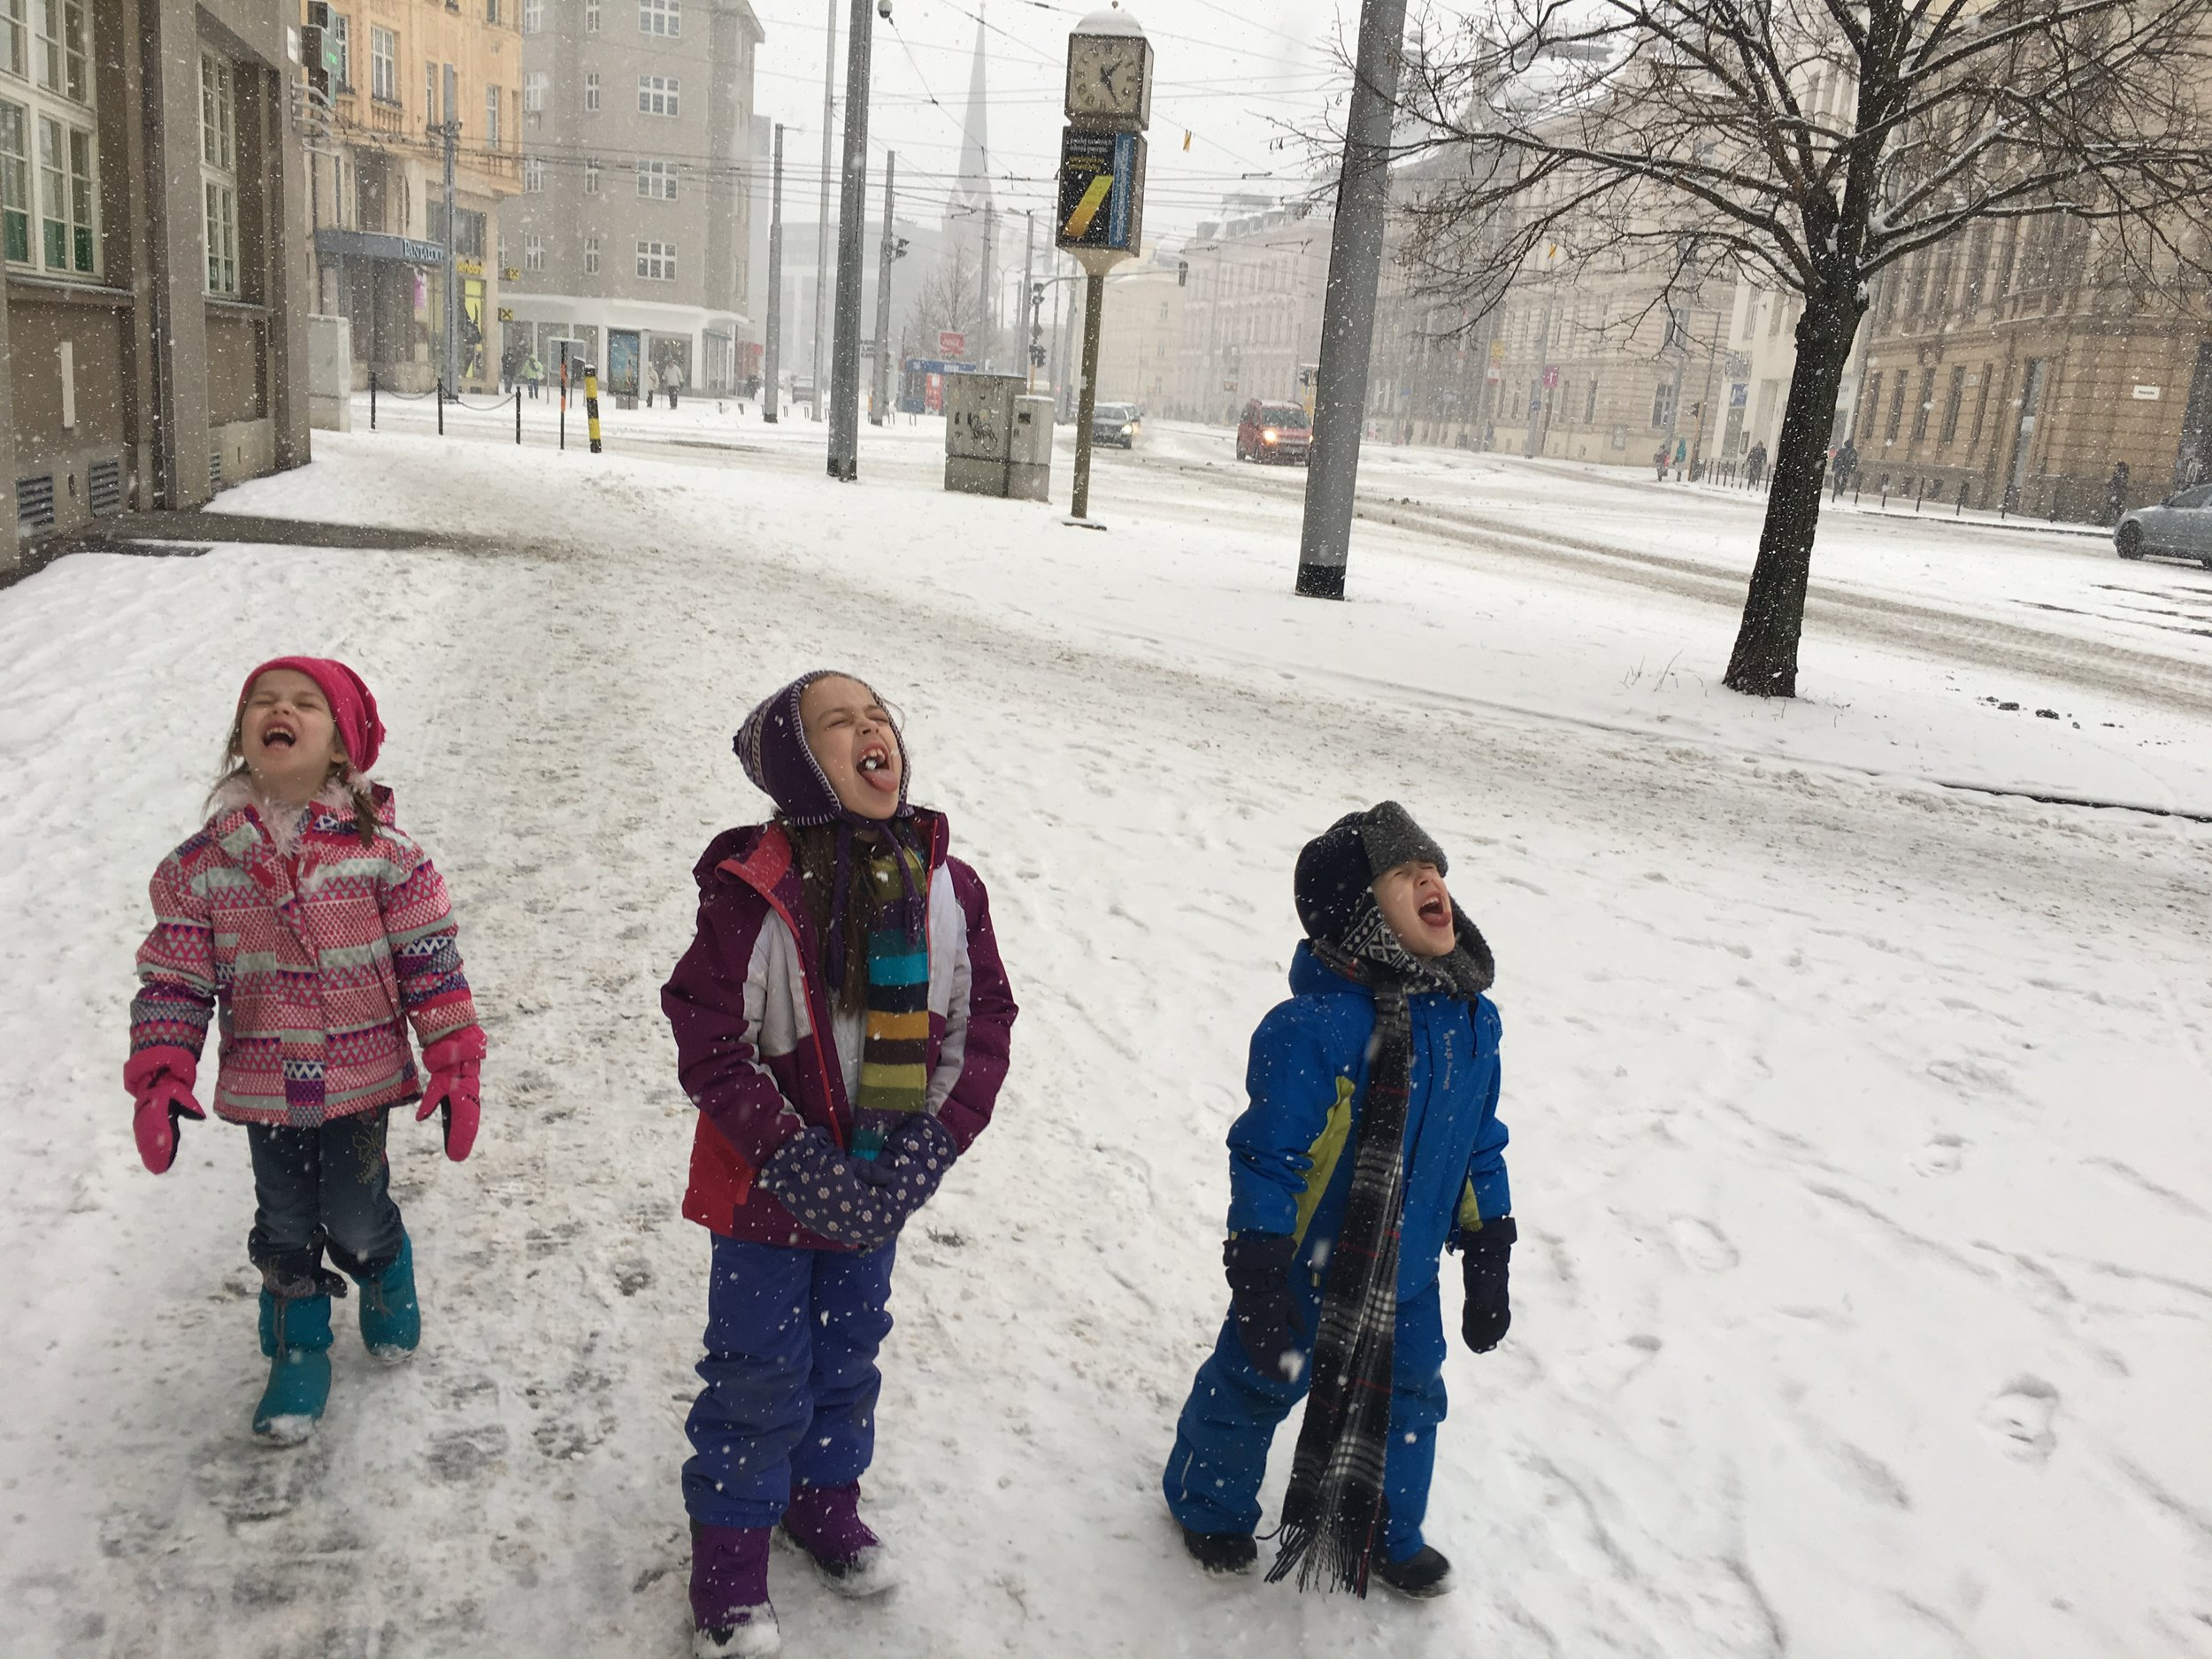 The kids catching snowflakes while walking downtown.